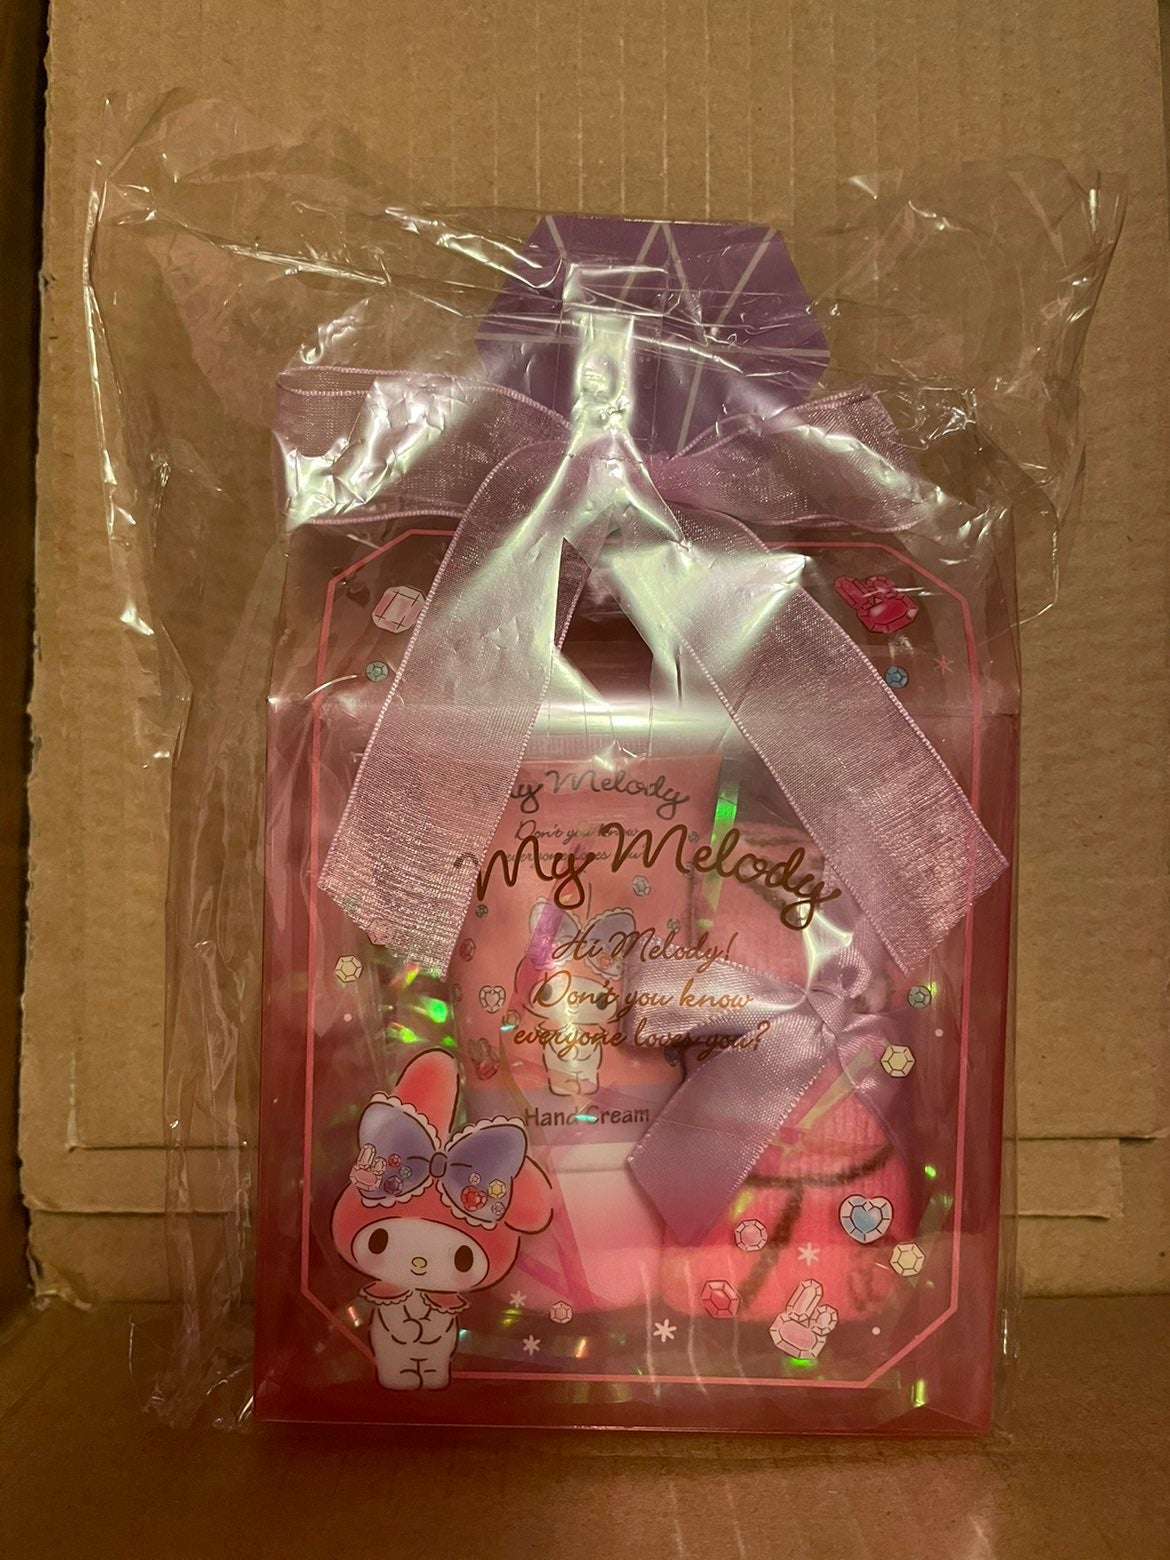 My melody hand cream and hand towel set